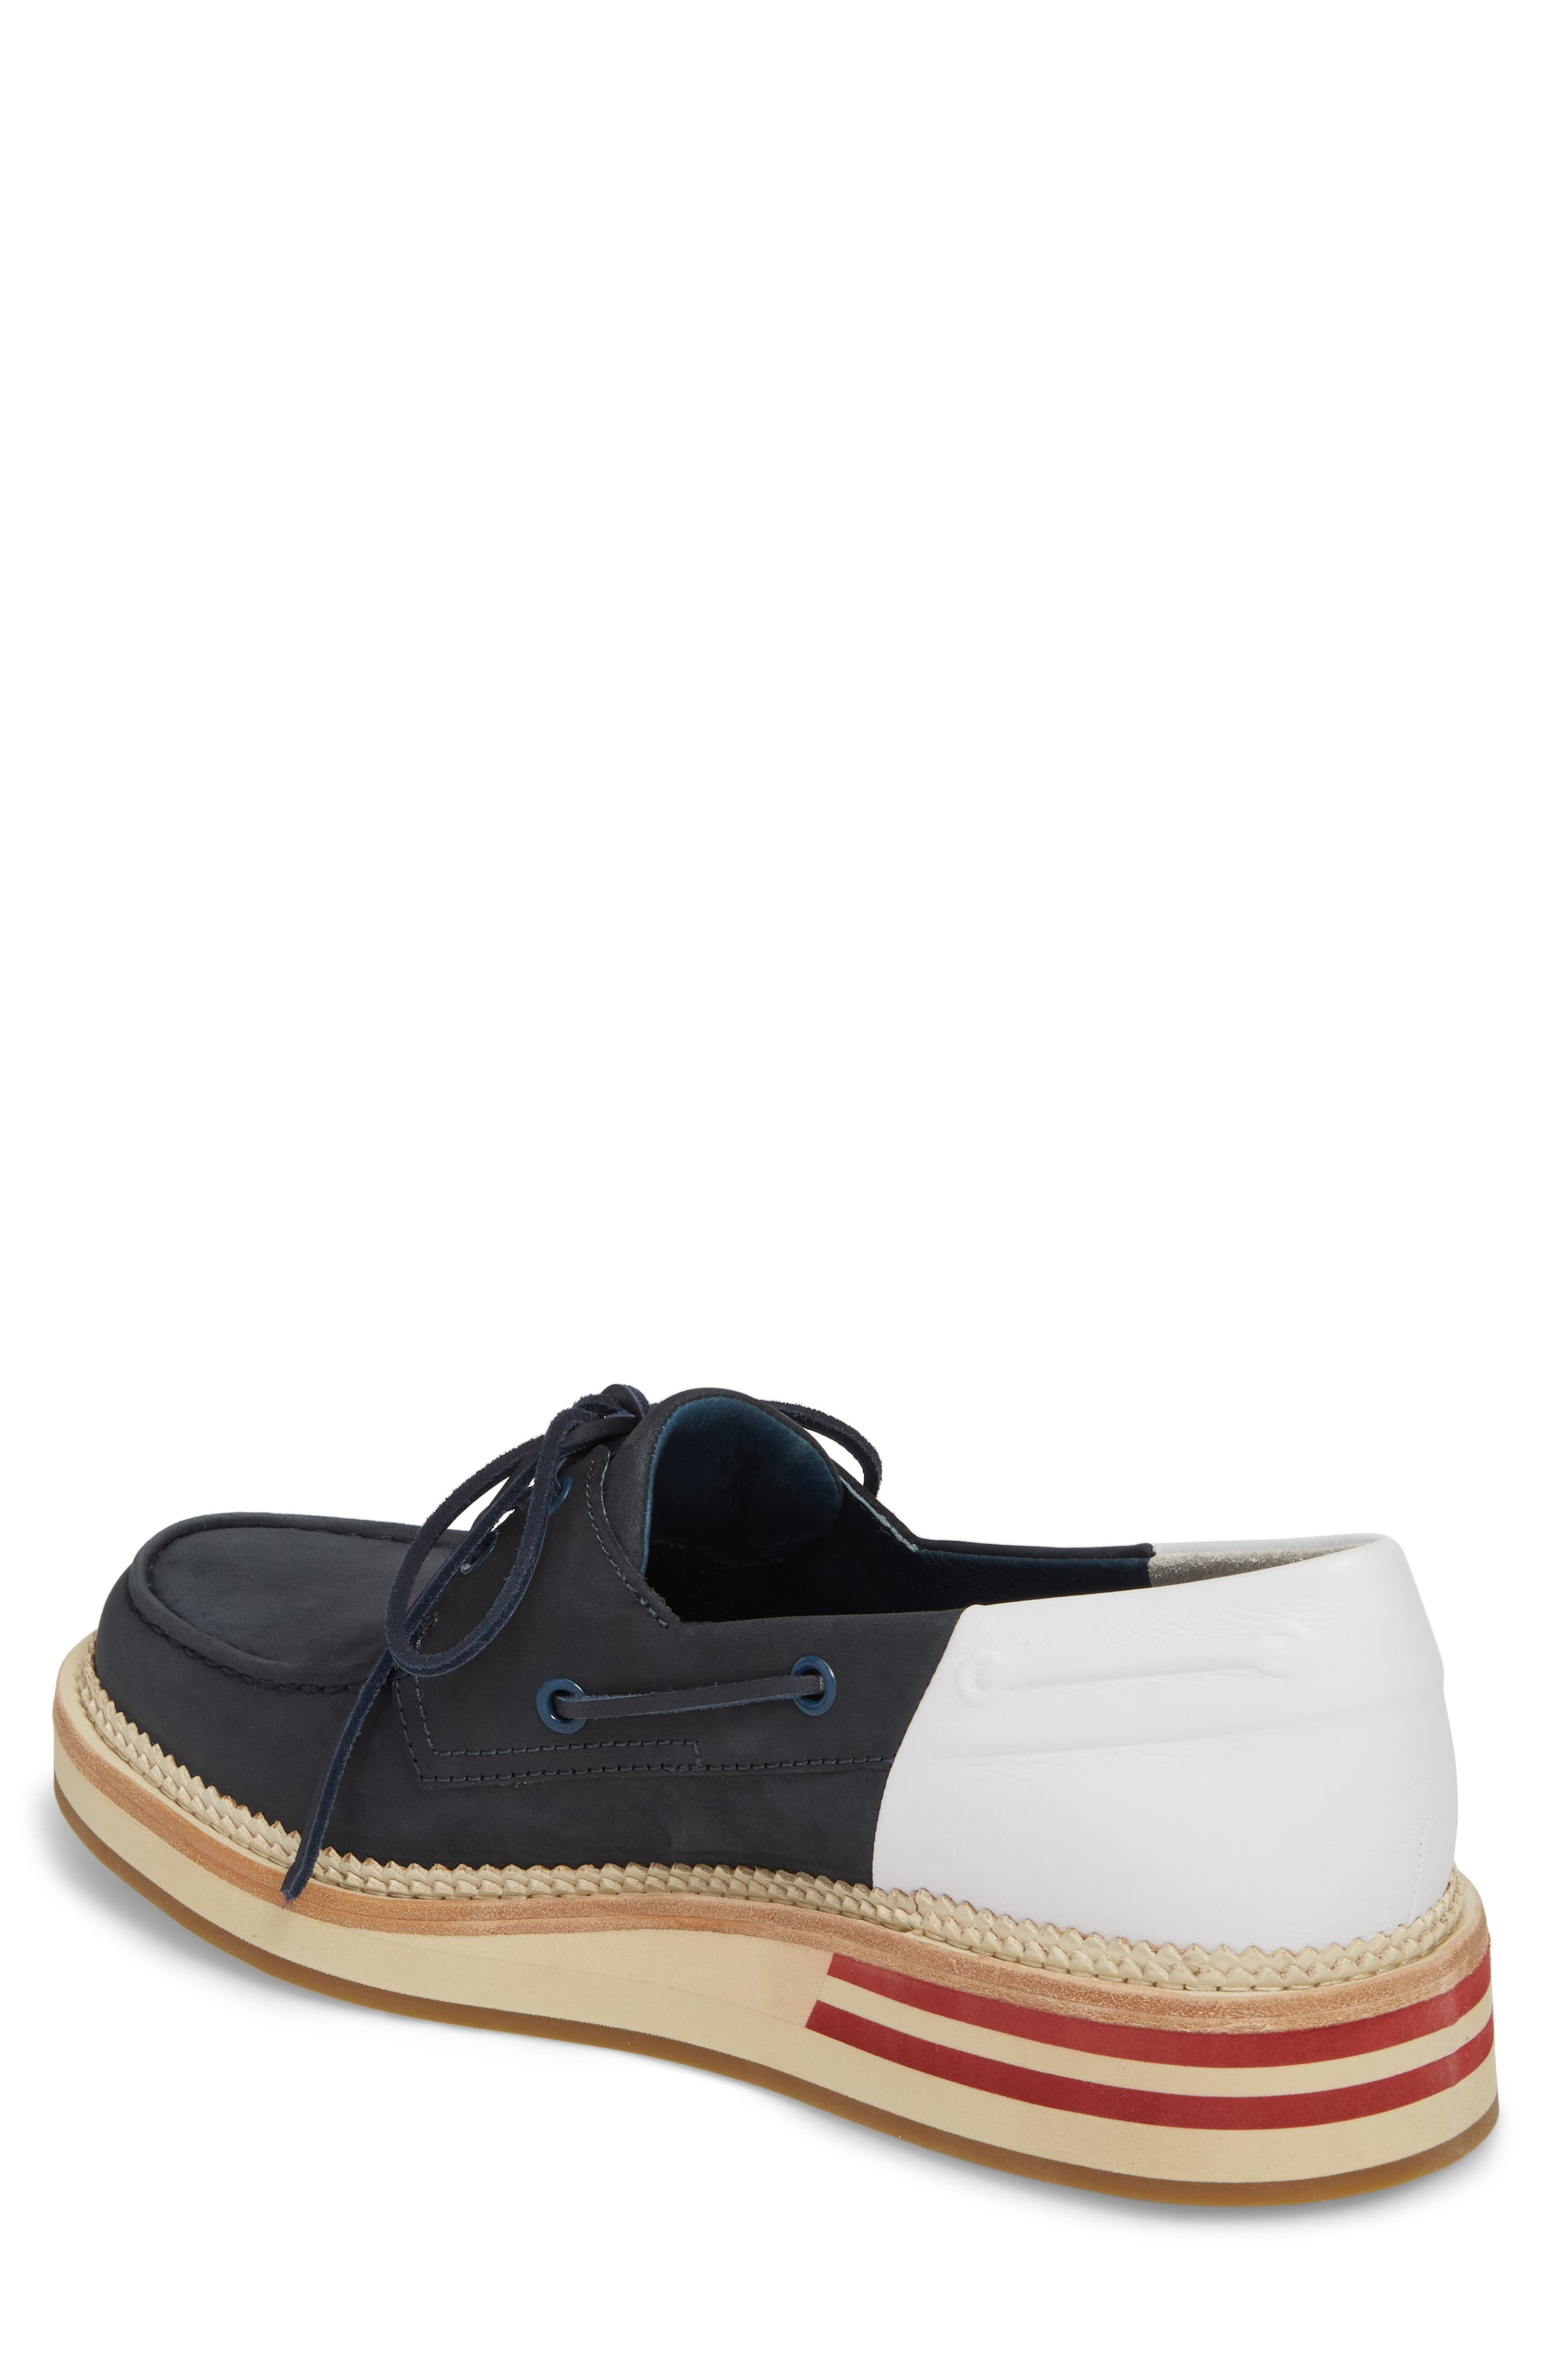 Cloud Colorblocked Boat Shoe,                             Alternate thumbnail 2, color,                             400